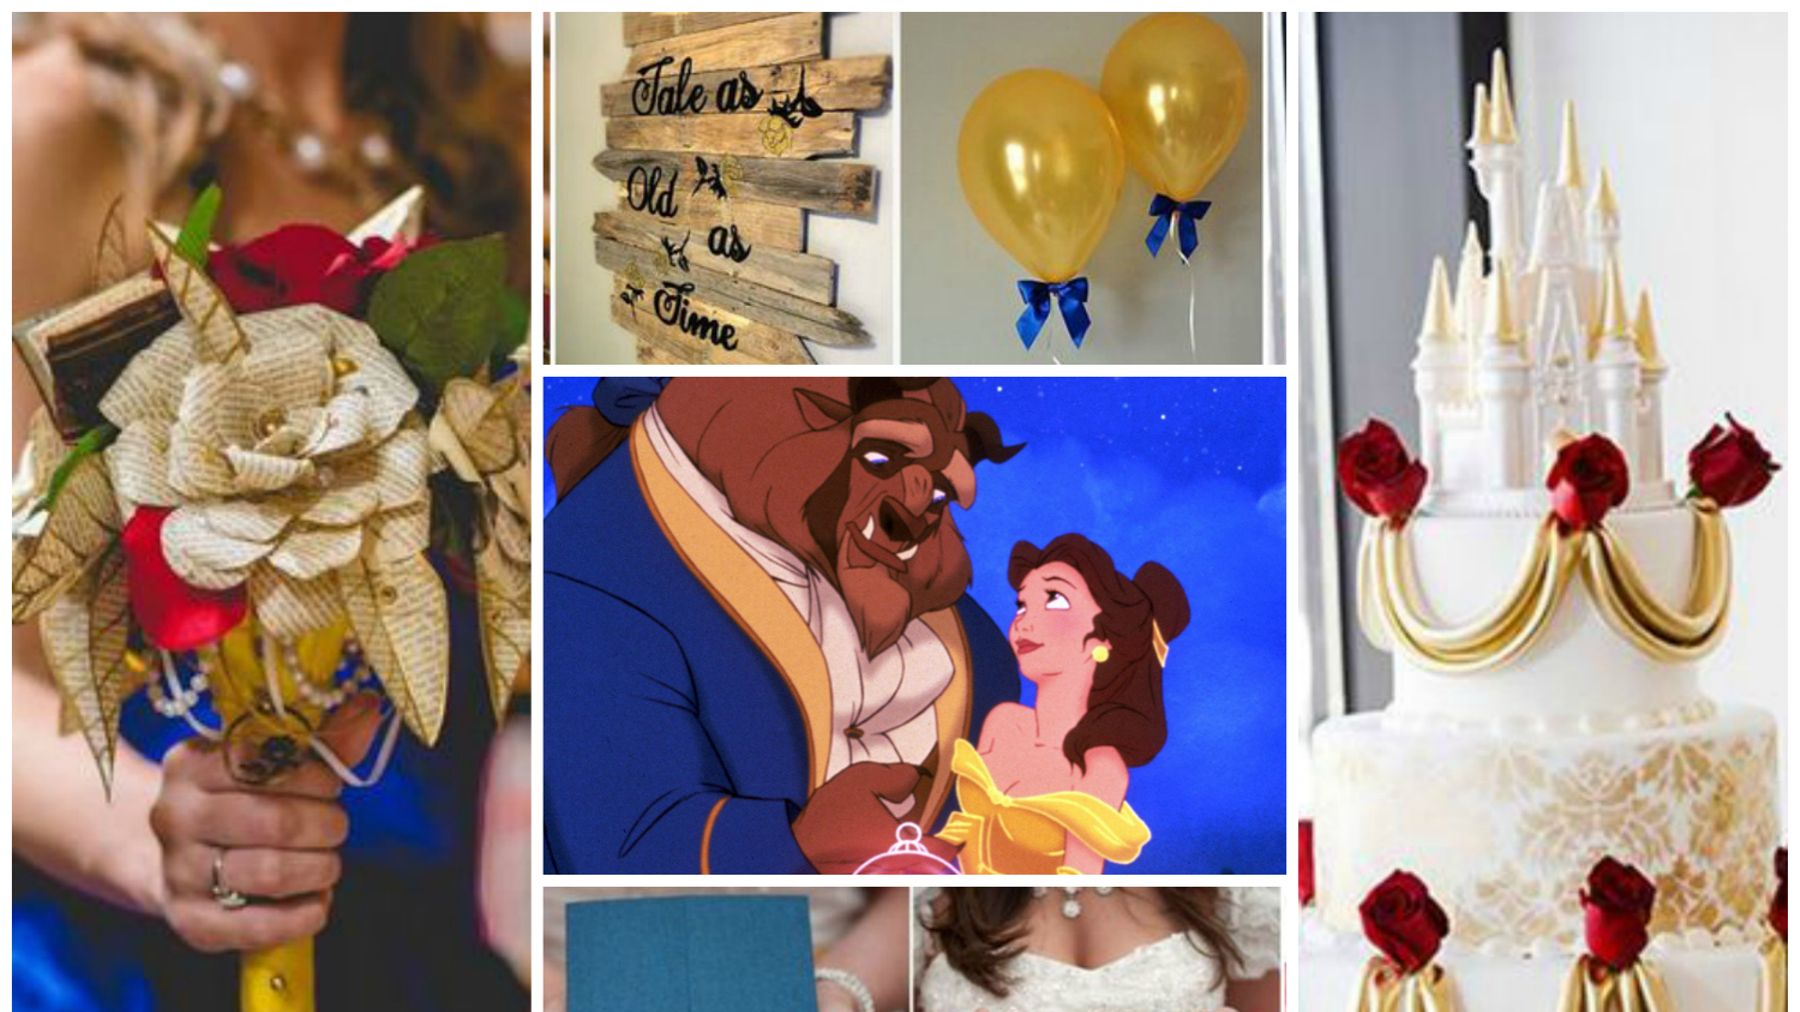 Beauty And The Beast Themed Wedding.Wedding Inspiration How To Throw The Ultimate Beauty And The Beast